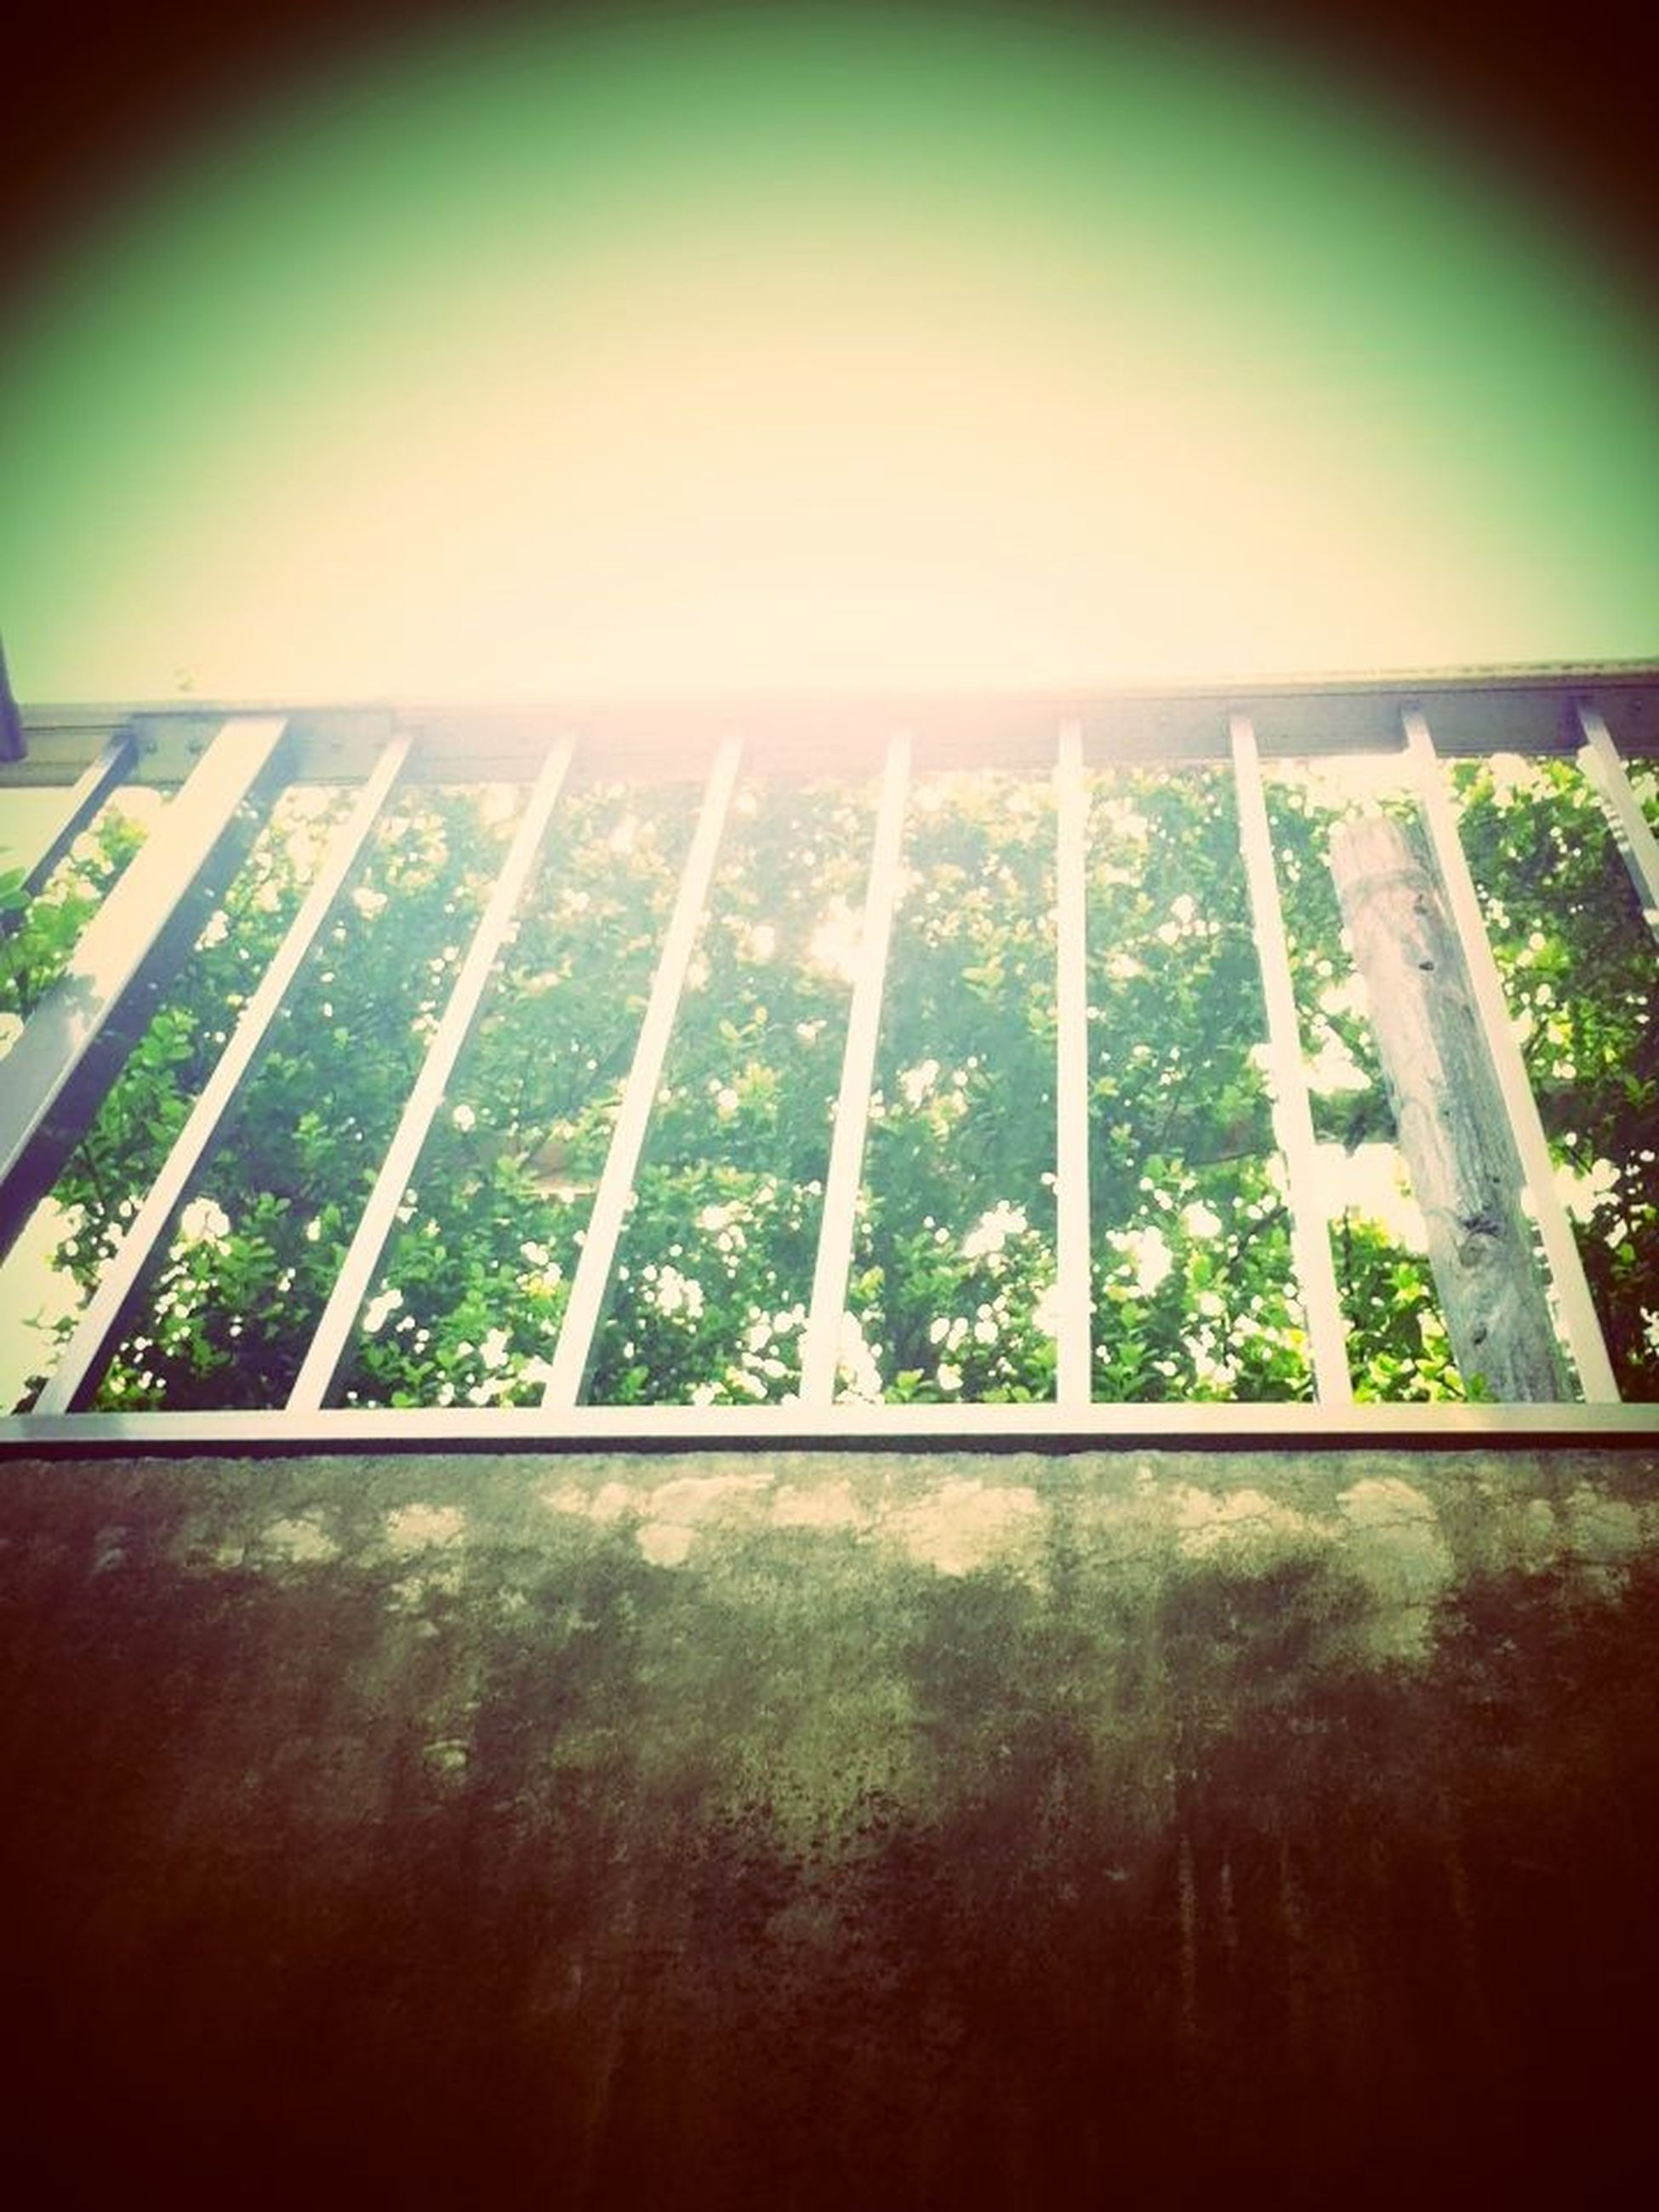 indoors, built structure, sunlight, low angle view, architecture, auto post production filter, day, no people, sky, clear sky, nature, window, shadow, growth, wall - building feature, pattern, transfer print, close-up